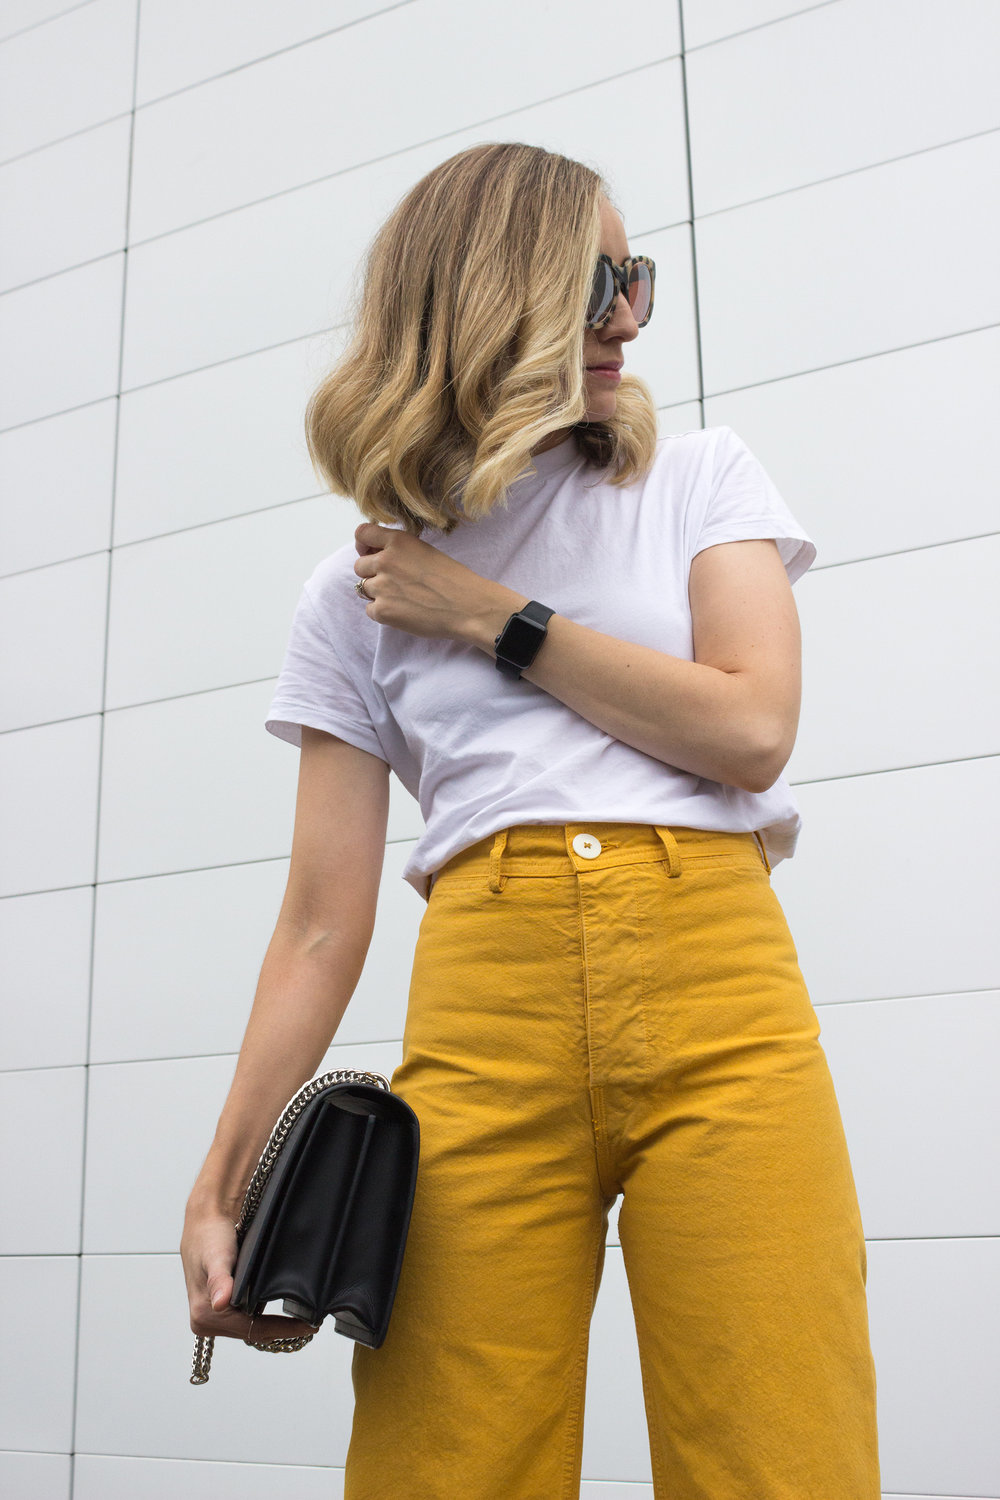 sharday-engel-jessie-kamm-yellow-pants-agneel-bag-vans-9.jpg